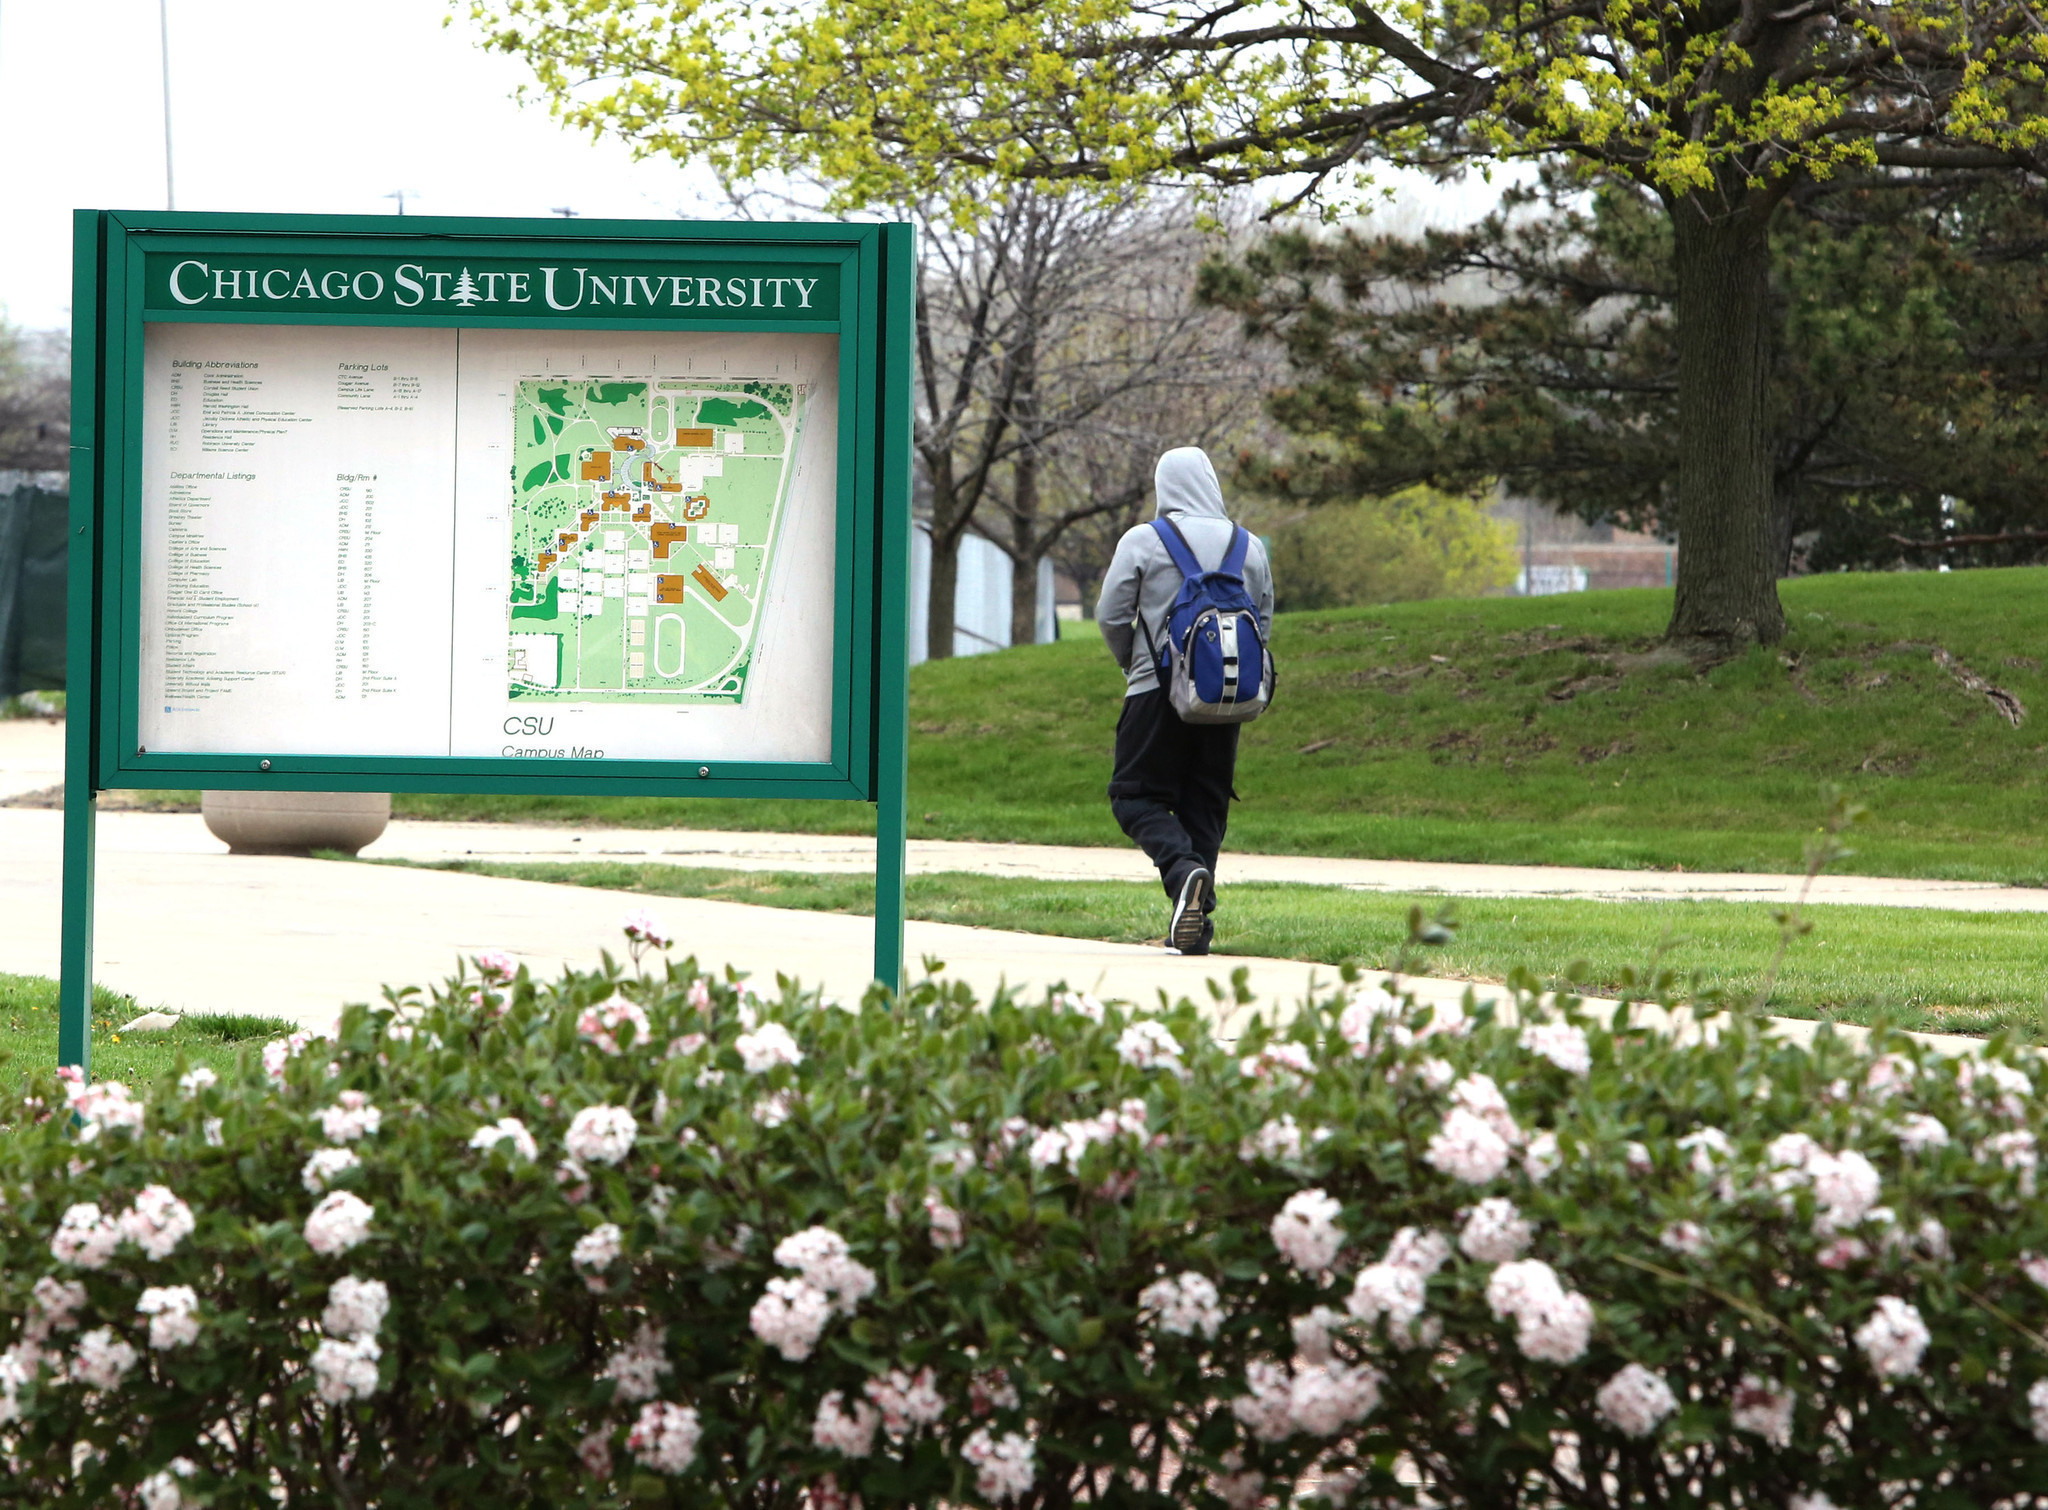 Chicago State Spends 1 2 Million On A Temporary Maintenance Fix